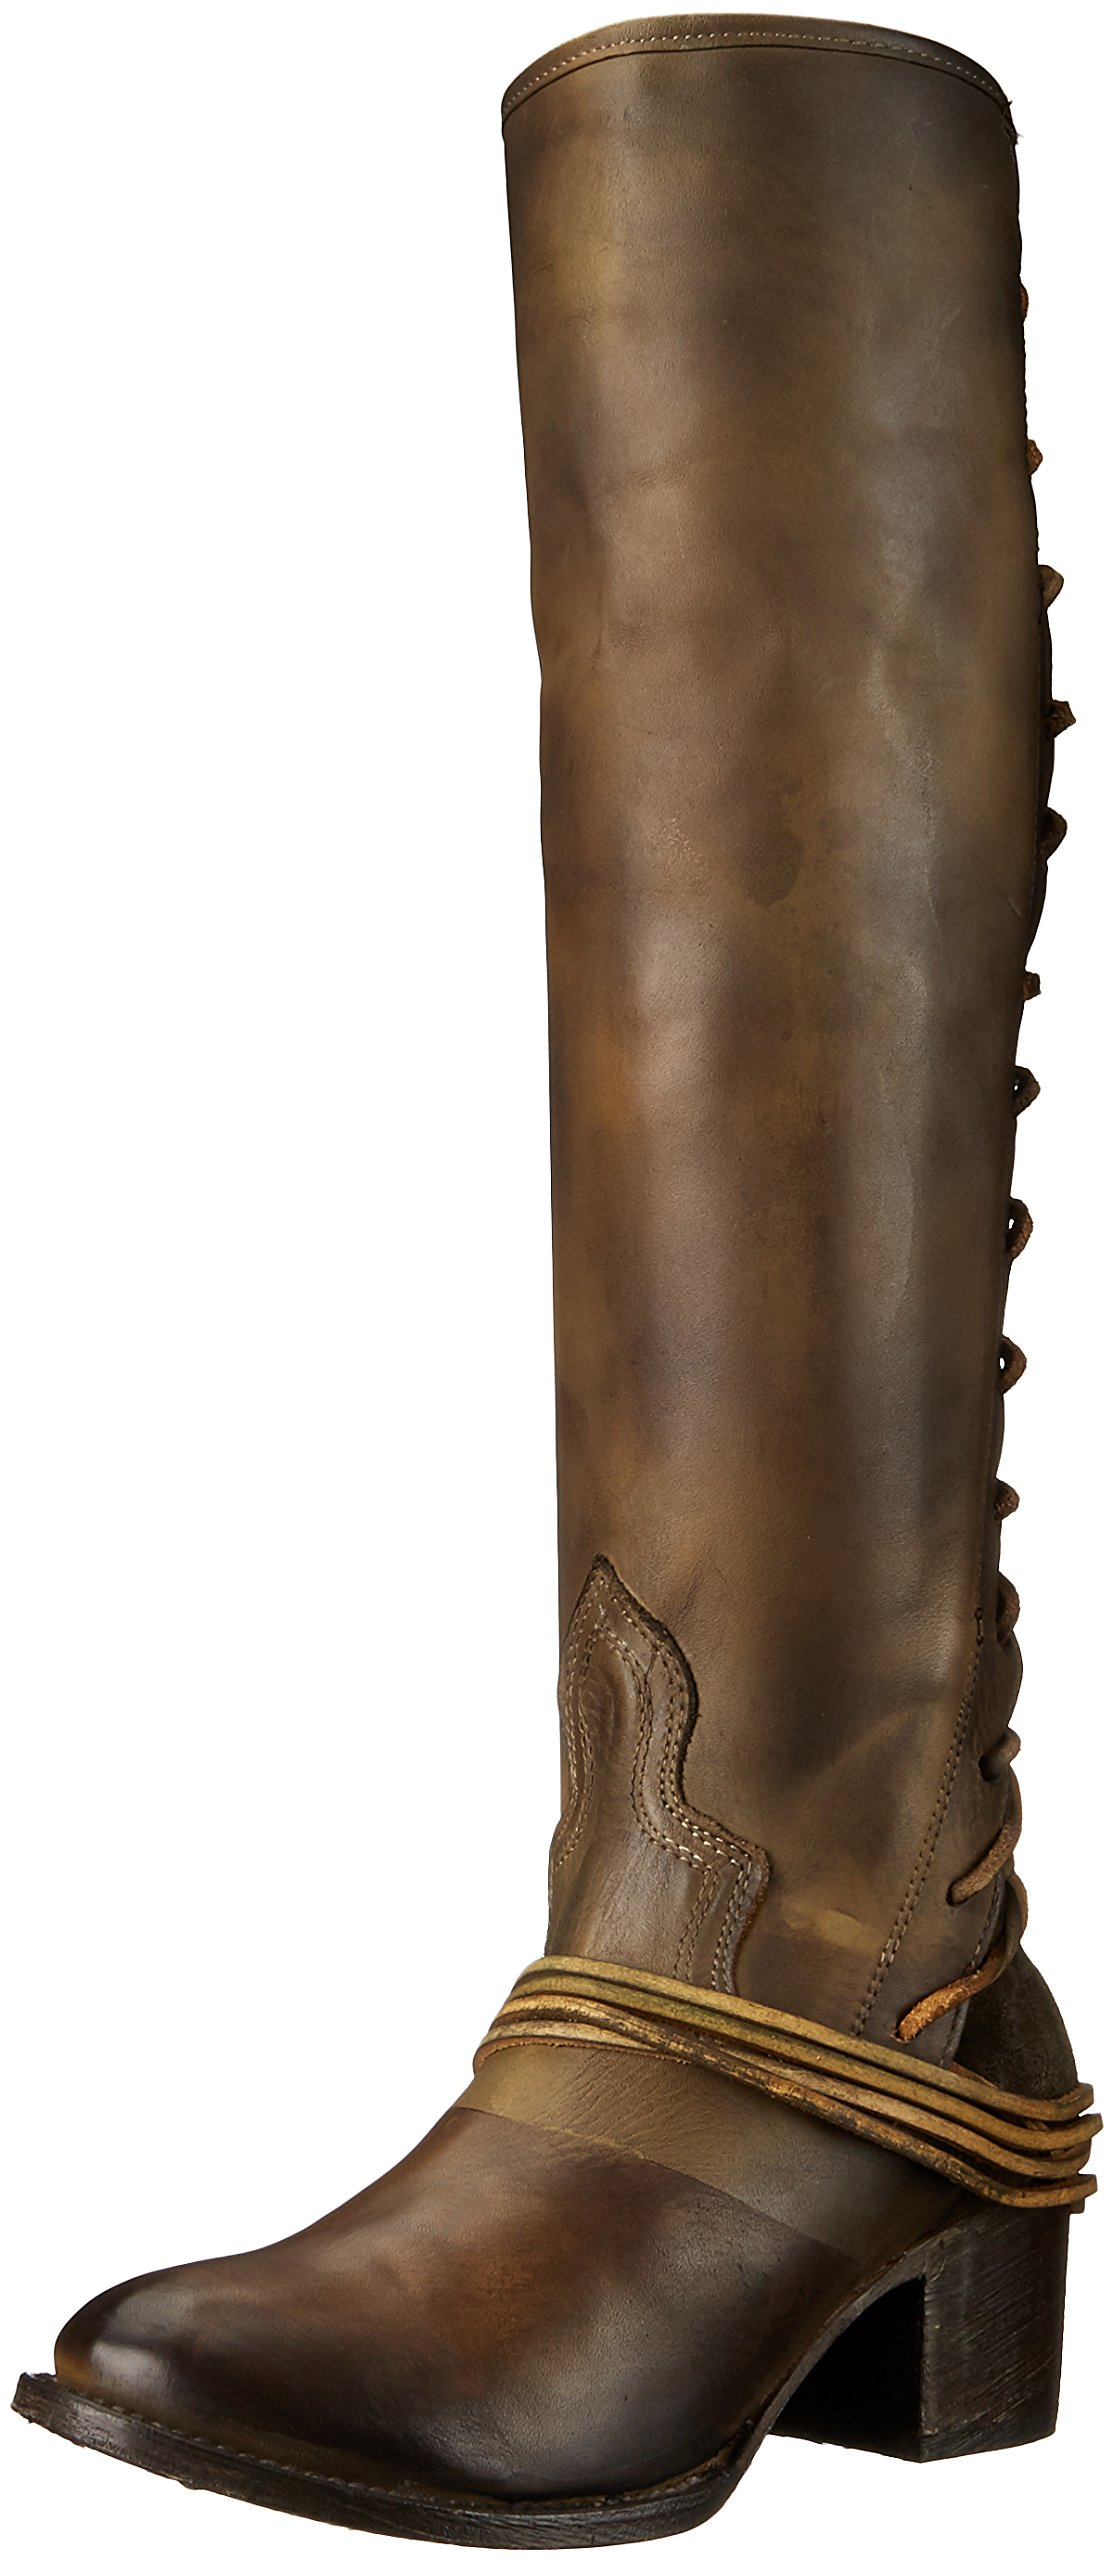 Freebird Women's Coal Riding Boot, Olive Leather, 7 M US